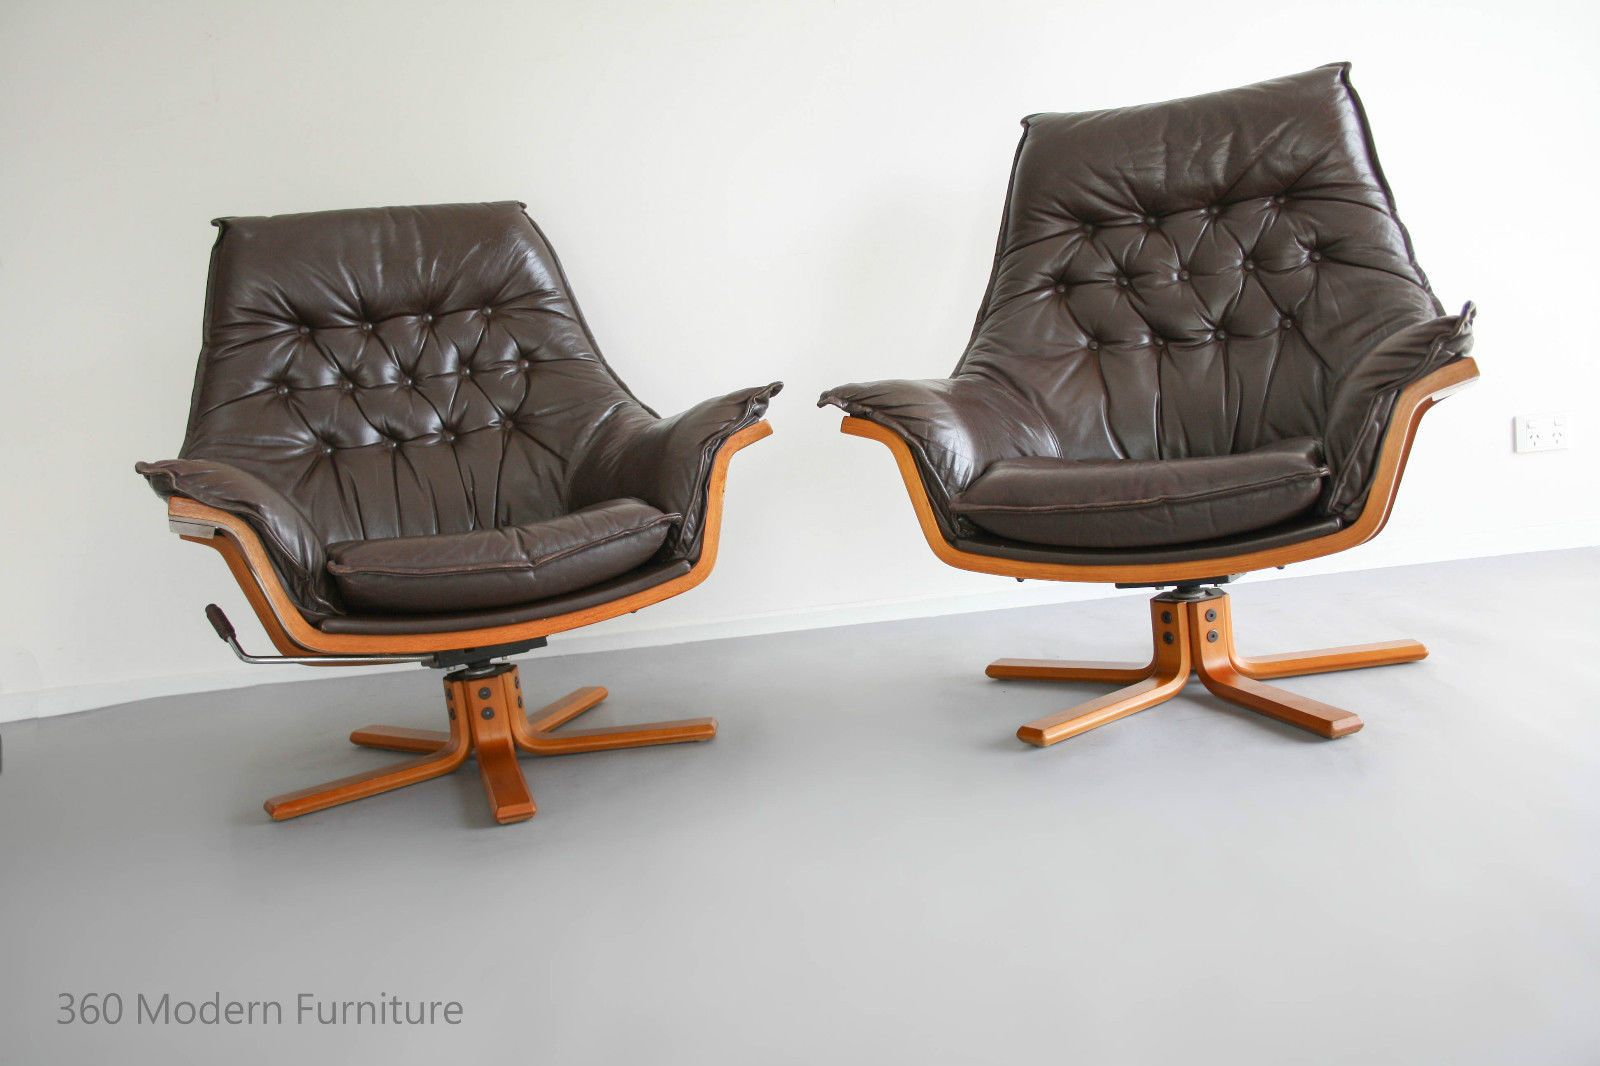 Modern leather rocker recliner - Mid Century Armchairs X2 Danish Deluxe Leather Swivel Rocker Recliner Bentwood Retro Vintage Lounge Chair Pair In Vic 360 Modern Furniture Ebay